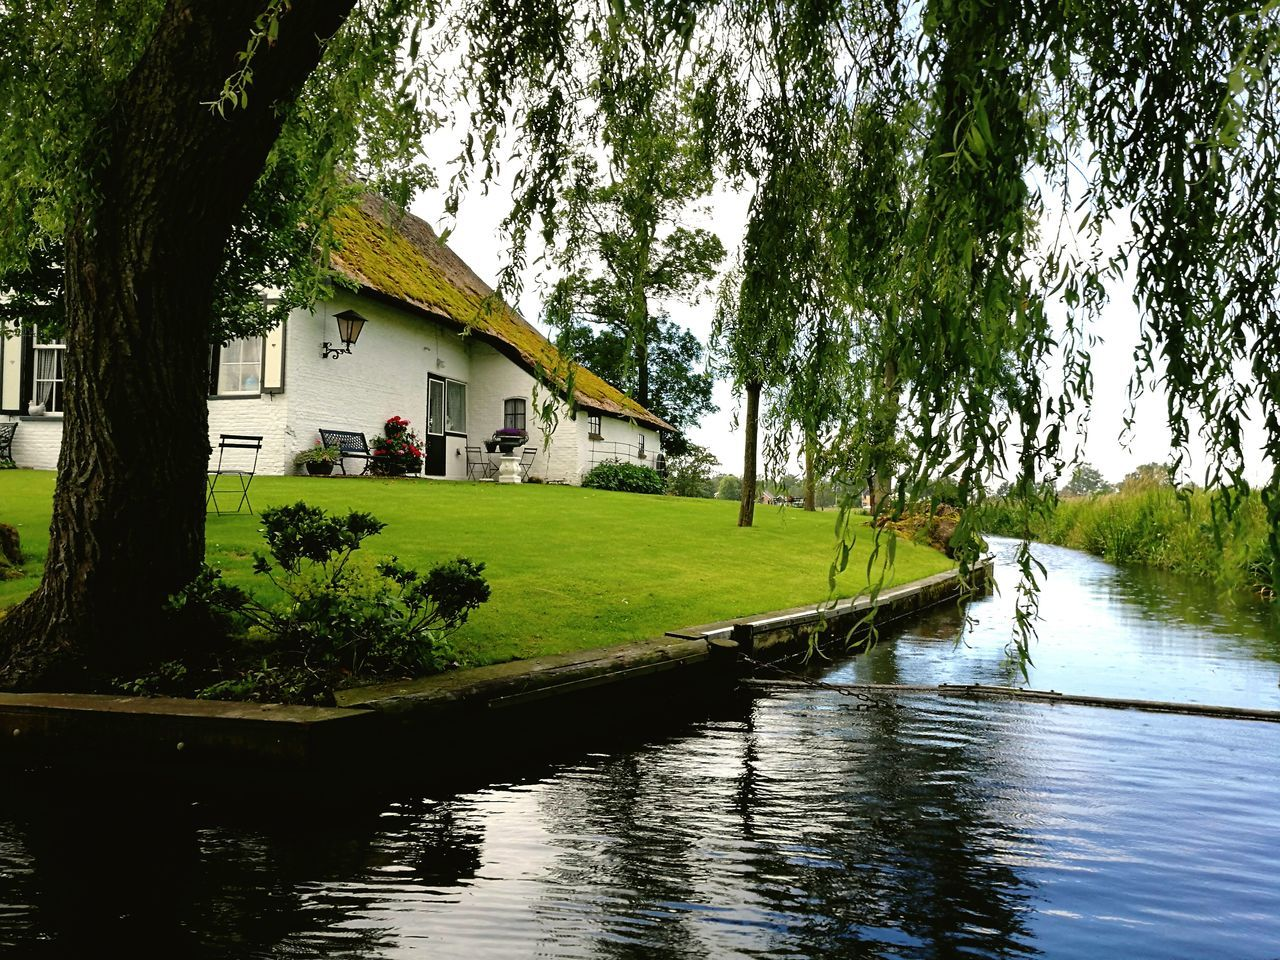 tree, water, architecture, built structure, building exterior, house, day, river, tranquility, nature, outdoors, growth, scenics, beauty in nature, no people, sky